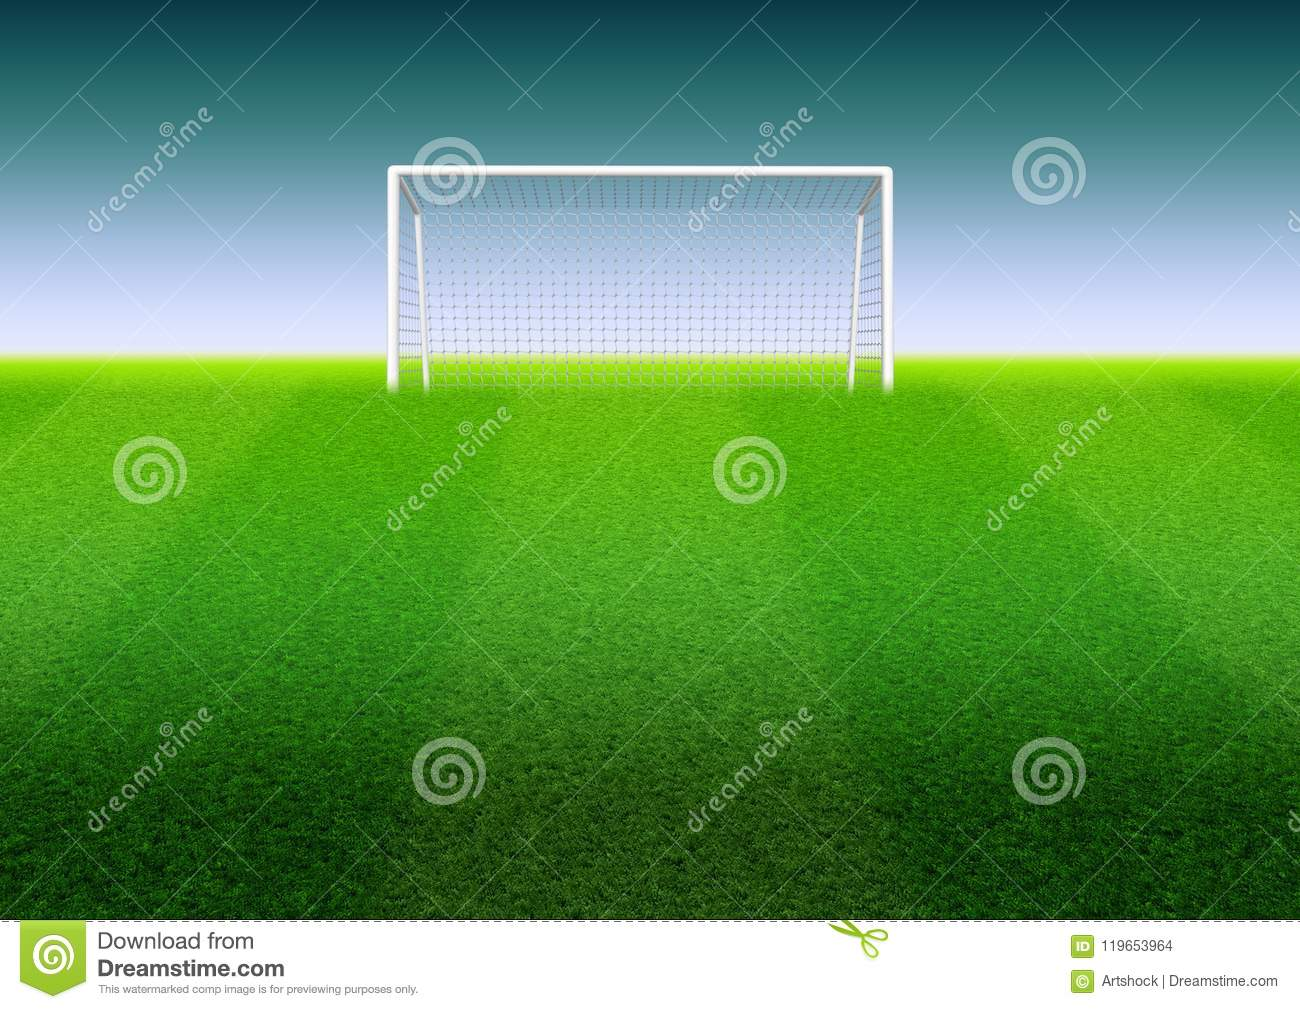 Soccer goal on the field